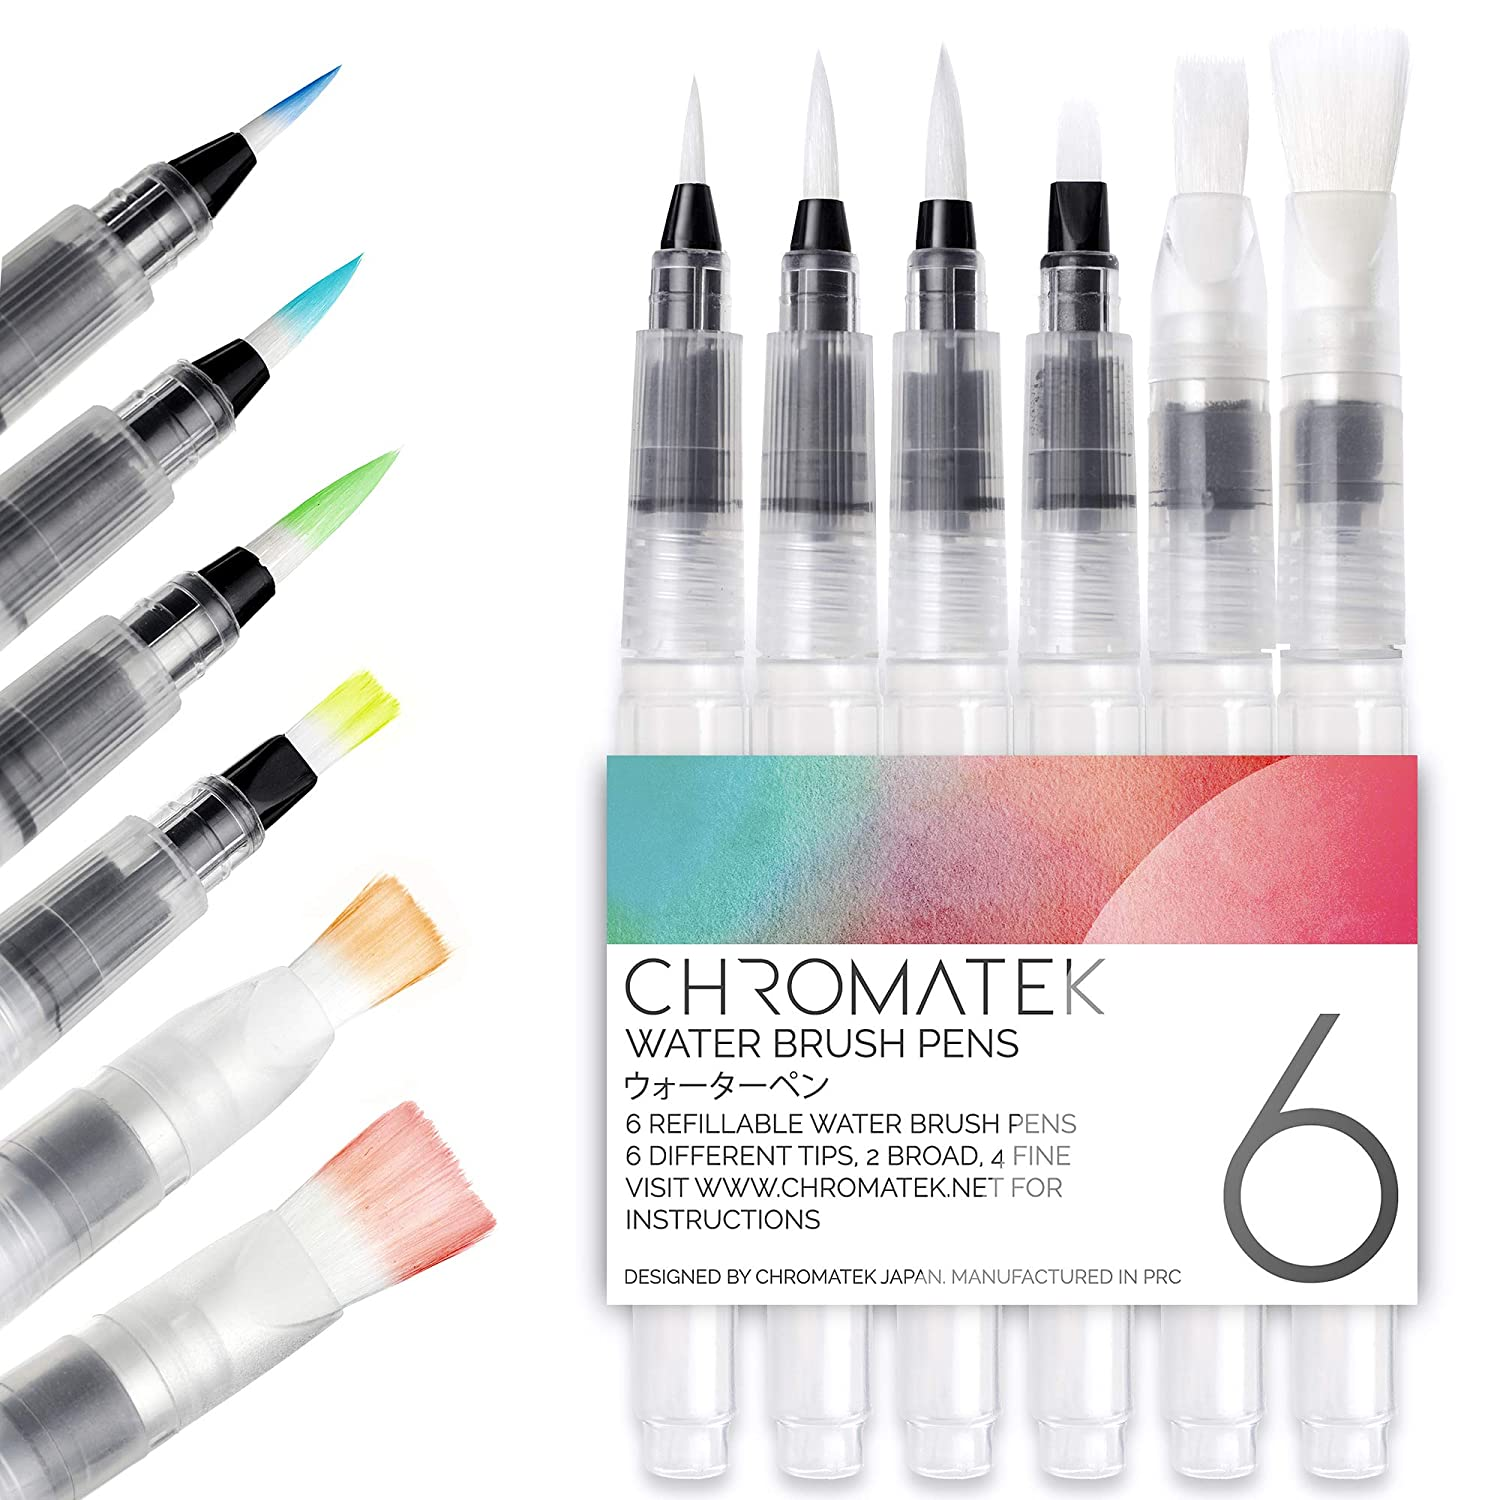 Water Brush Pens by Chromatek Watercolor Brush Pen Painting Brushes for All Water Soluble Pigment and Watercolor Paints. Set of 6 Aqua Pens Online Video Tutorial and Downloadable Picture Template